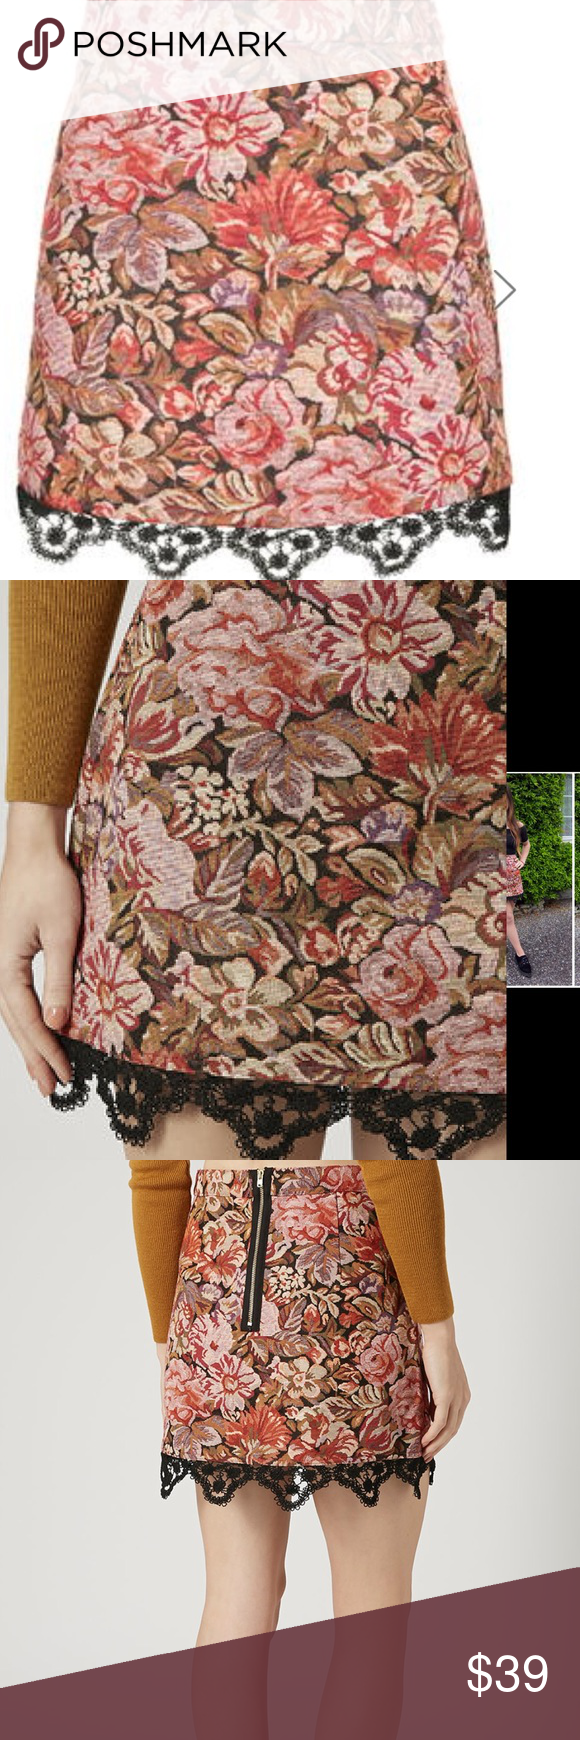 LAST CHANCE Tapestry a-line skirt Topshop Skirts Mini